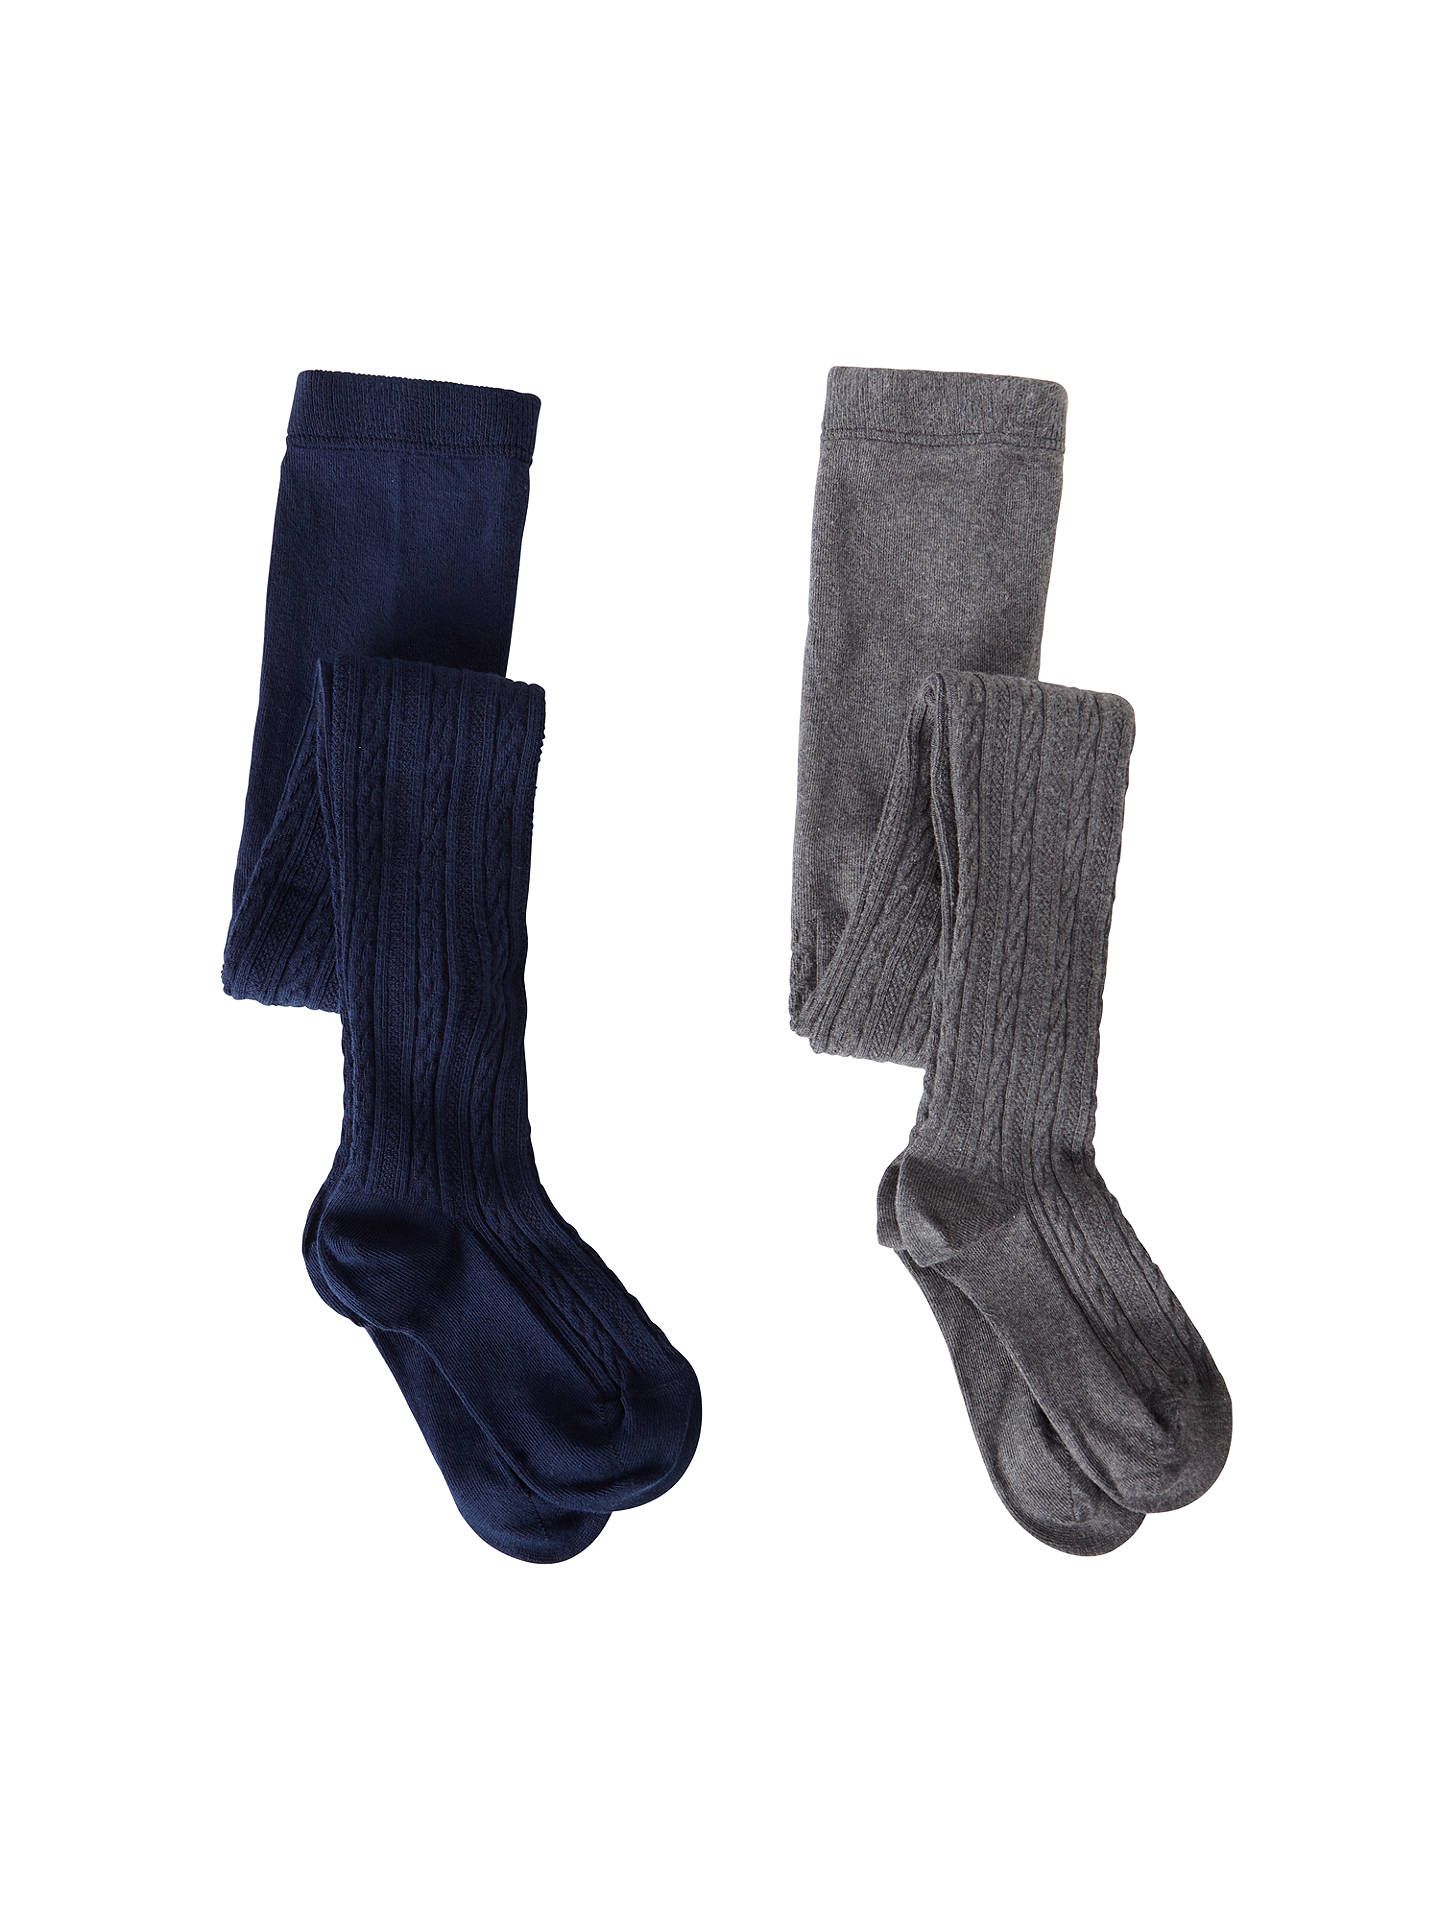 BuyJohn Lewis & Partners Girls' Cable Knitted Tights, Pack of 2, Navy/Grey, 2-3 years Online at johnlewis.com